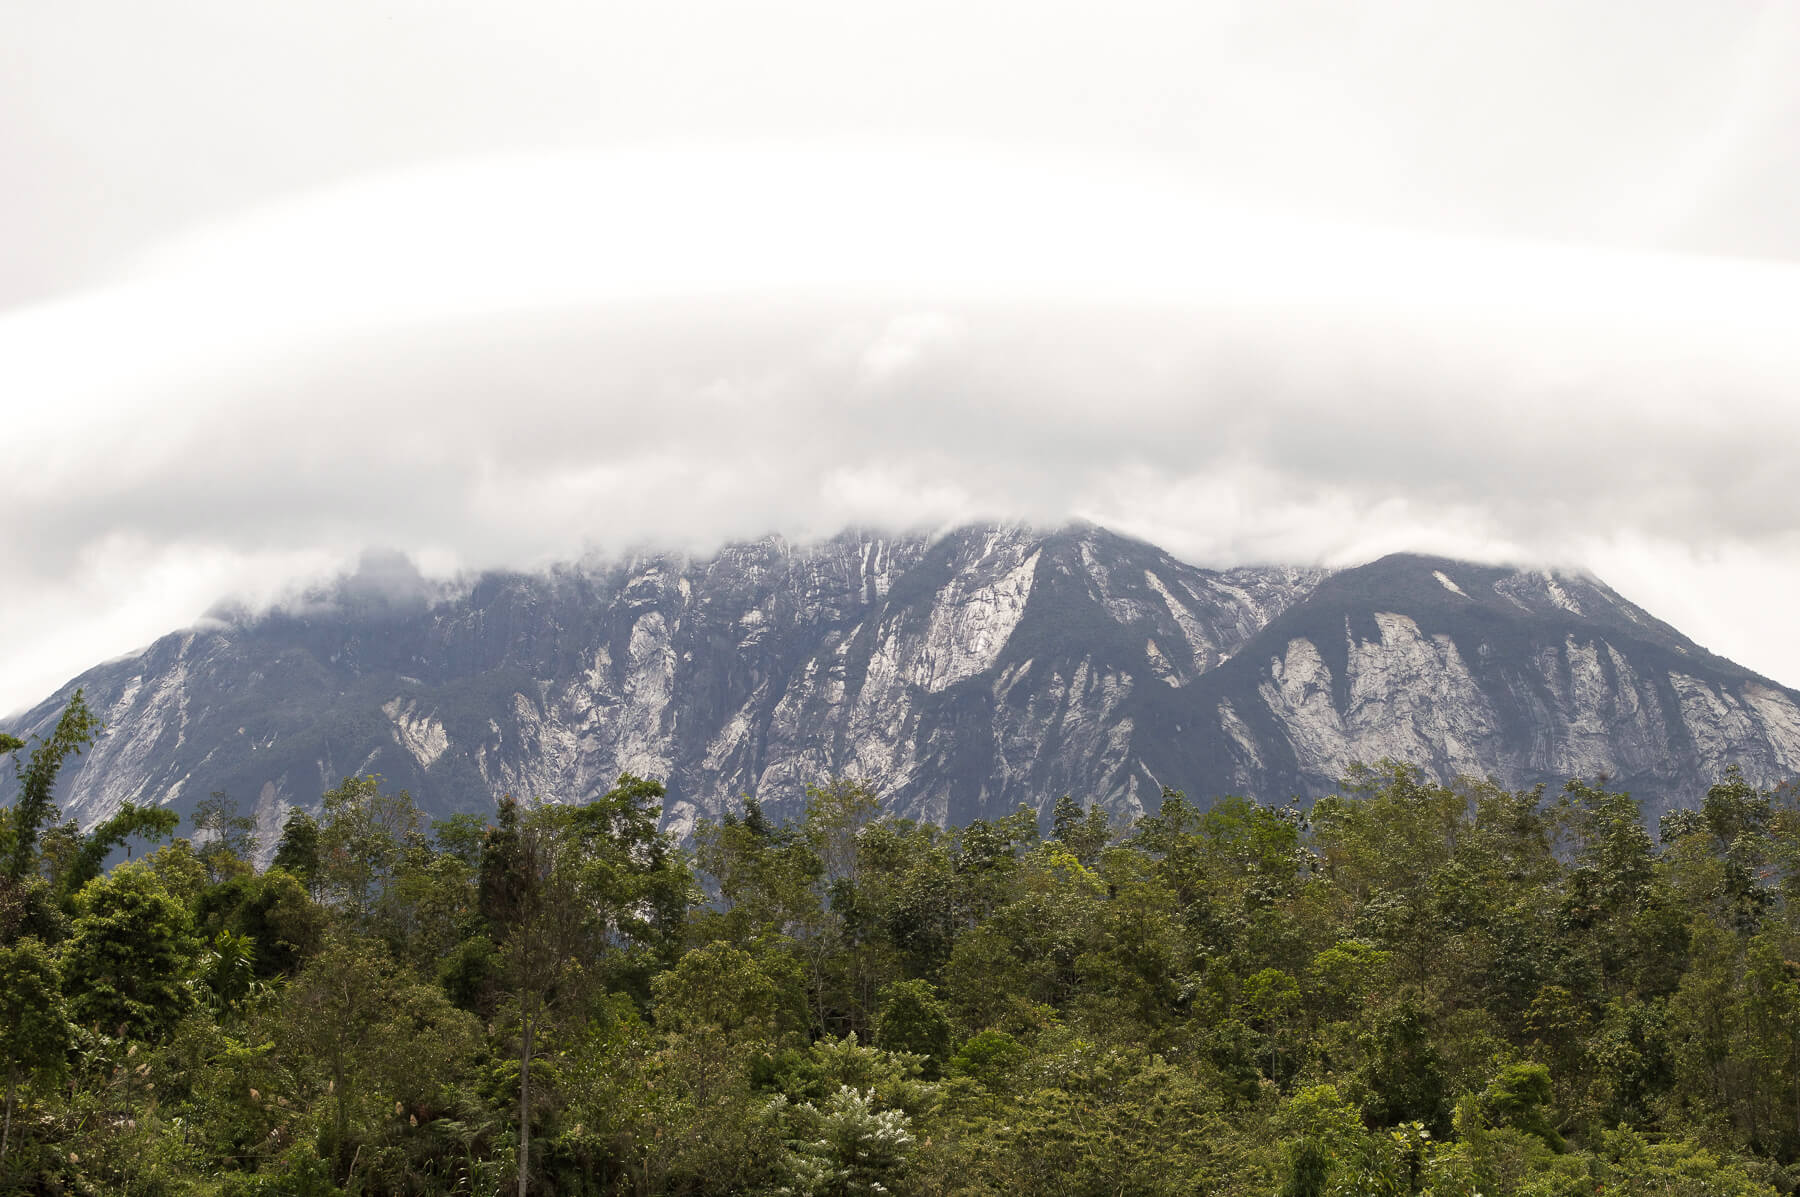 Mount Kinabalu covered in clouds